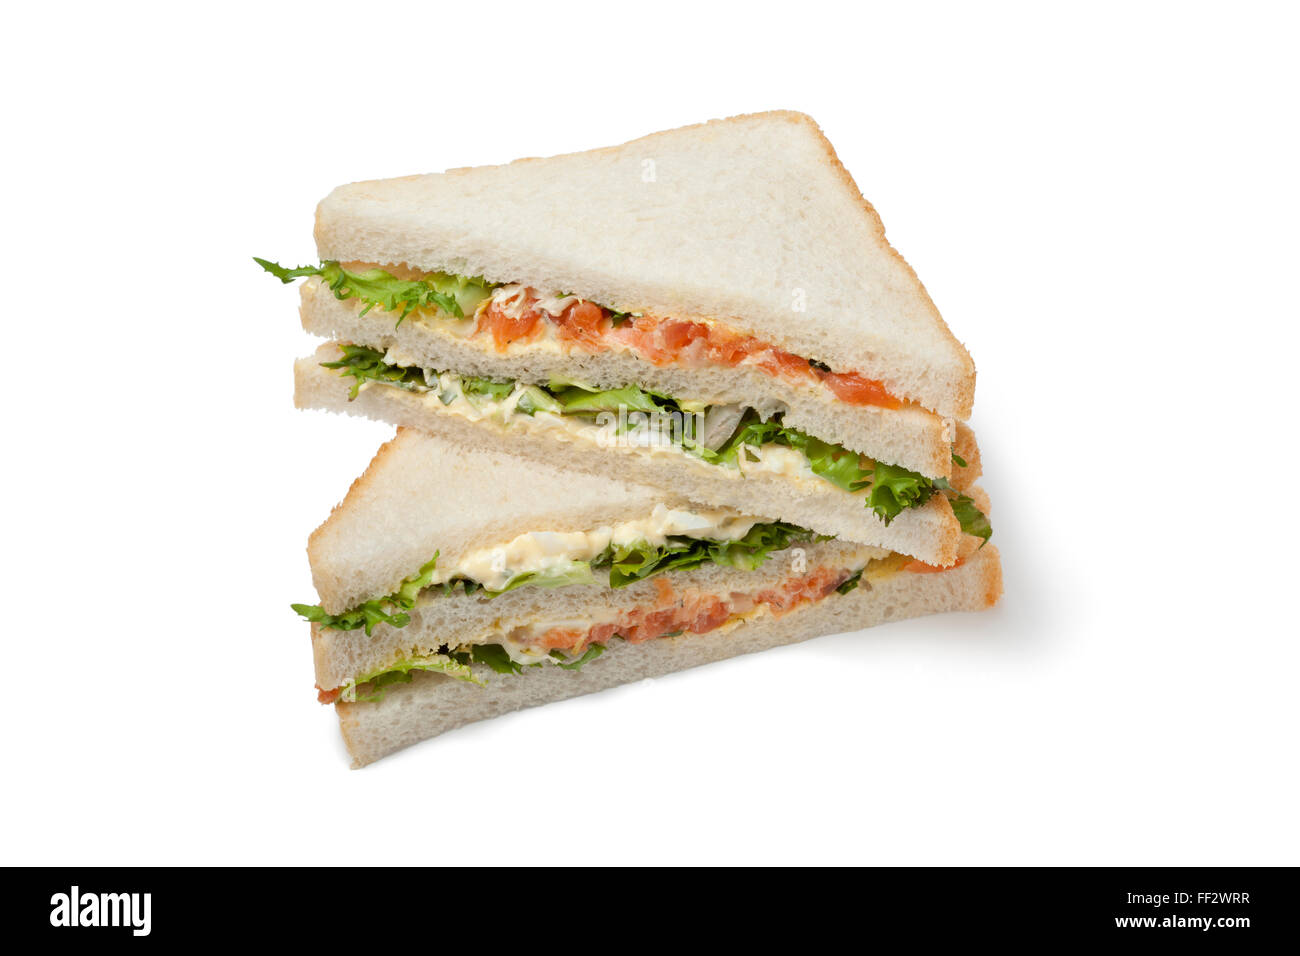 Fresh Salmon and egg club sandwich on white background - Stock Image